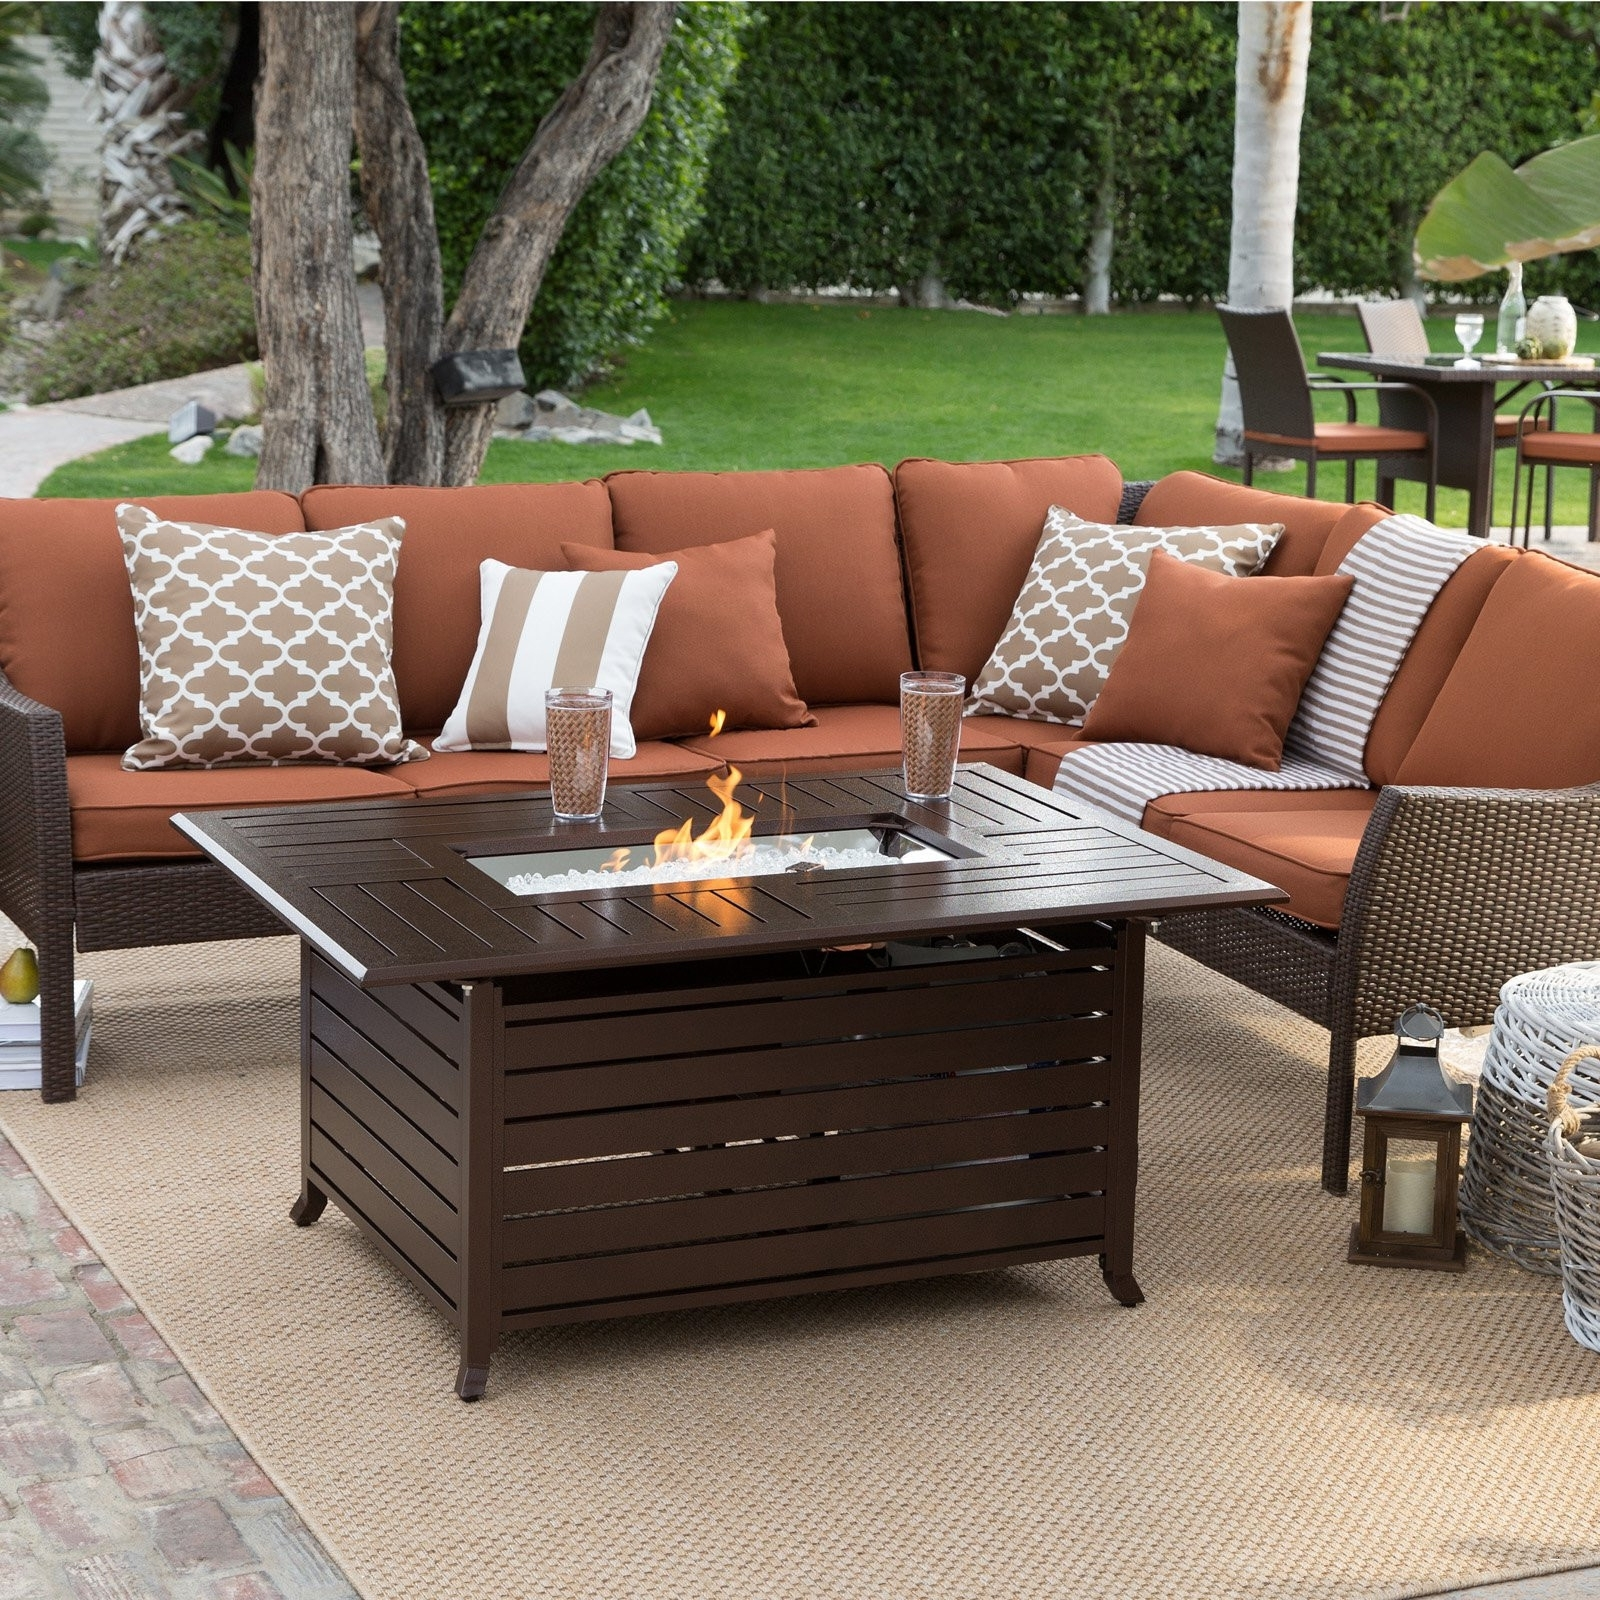 Patio Conversation Sets With Fire Pit In Most Popular Fireplace Tables Outdoor Unique Patio Conversation Sets With Fire (View 5 of 20)